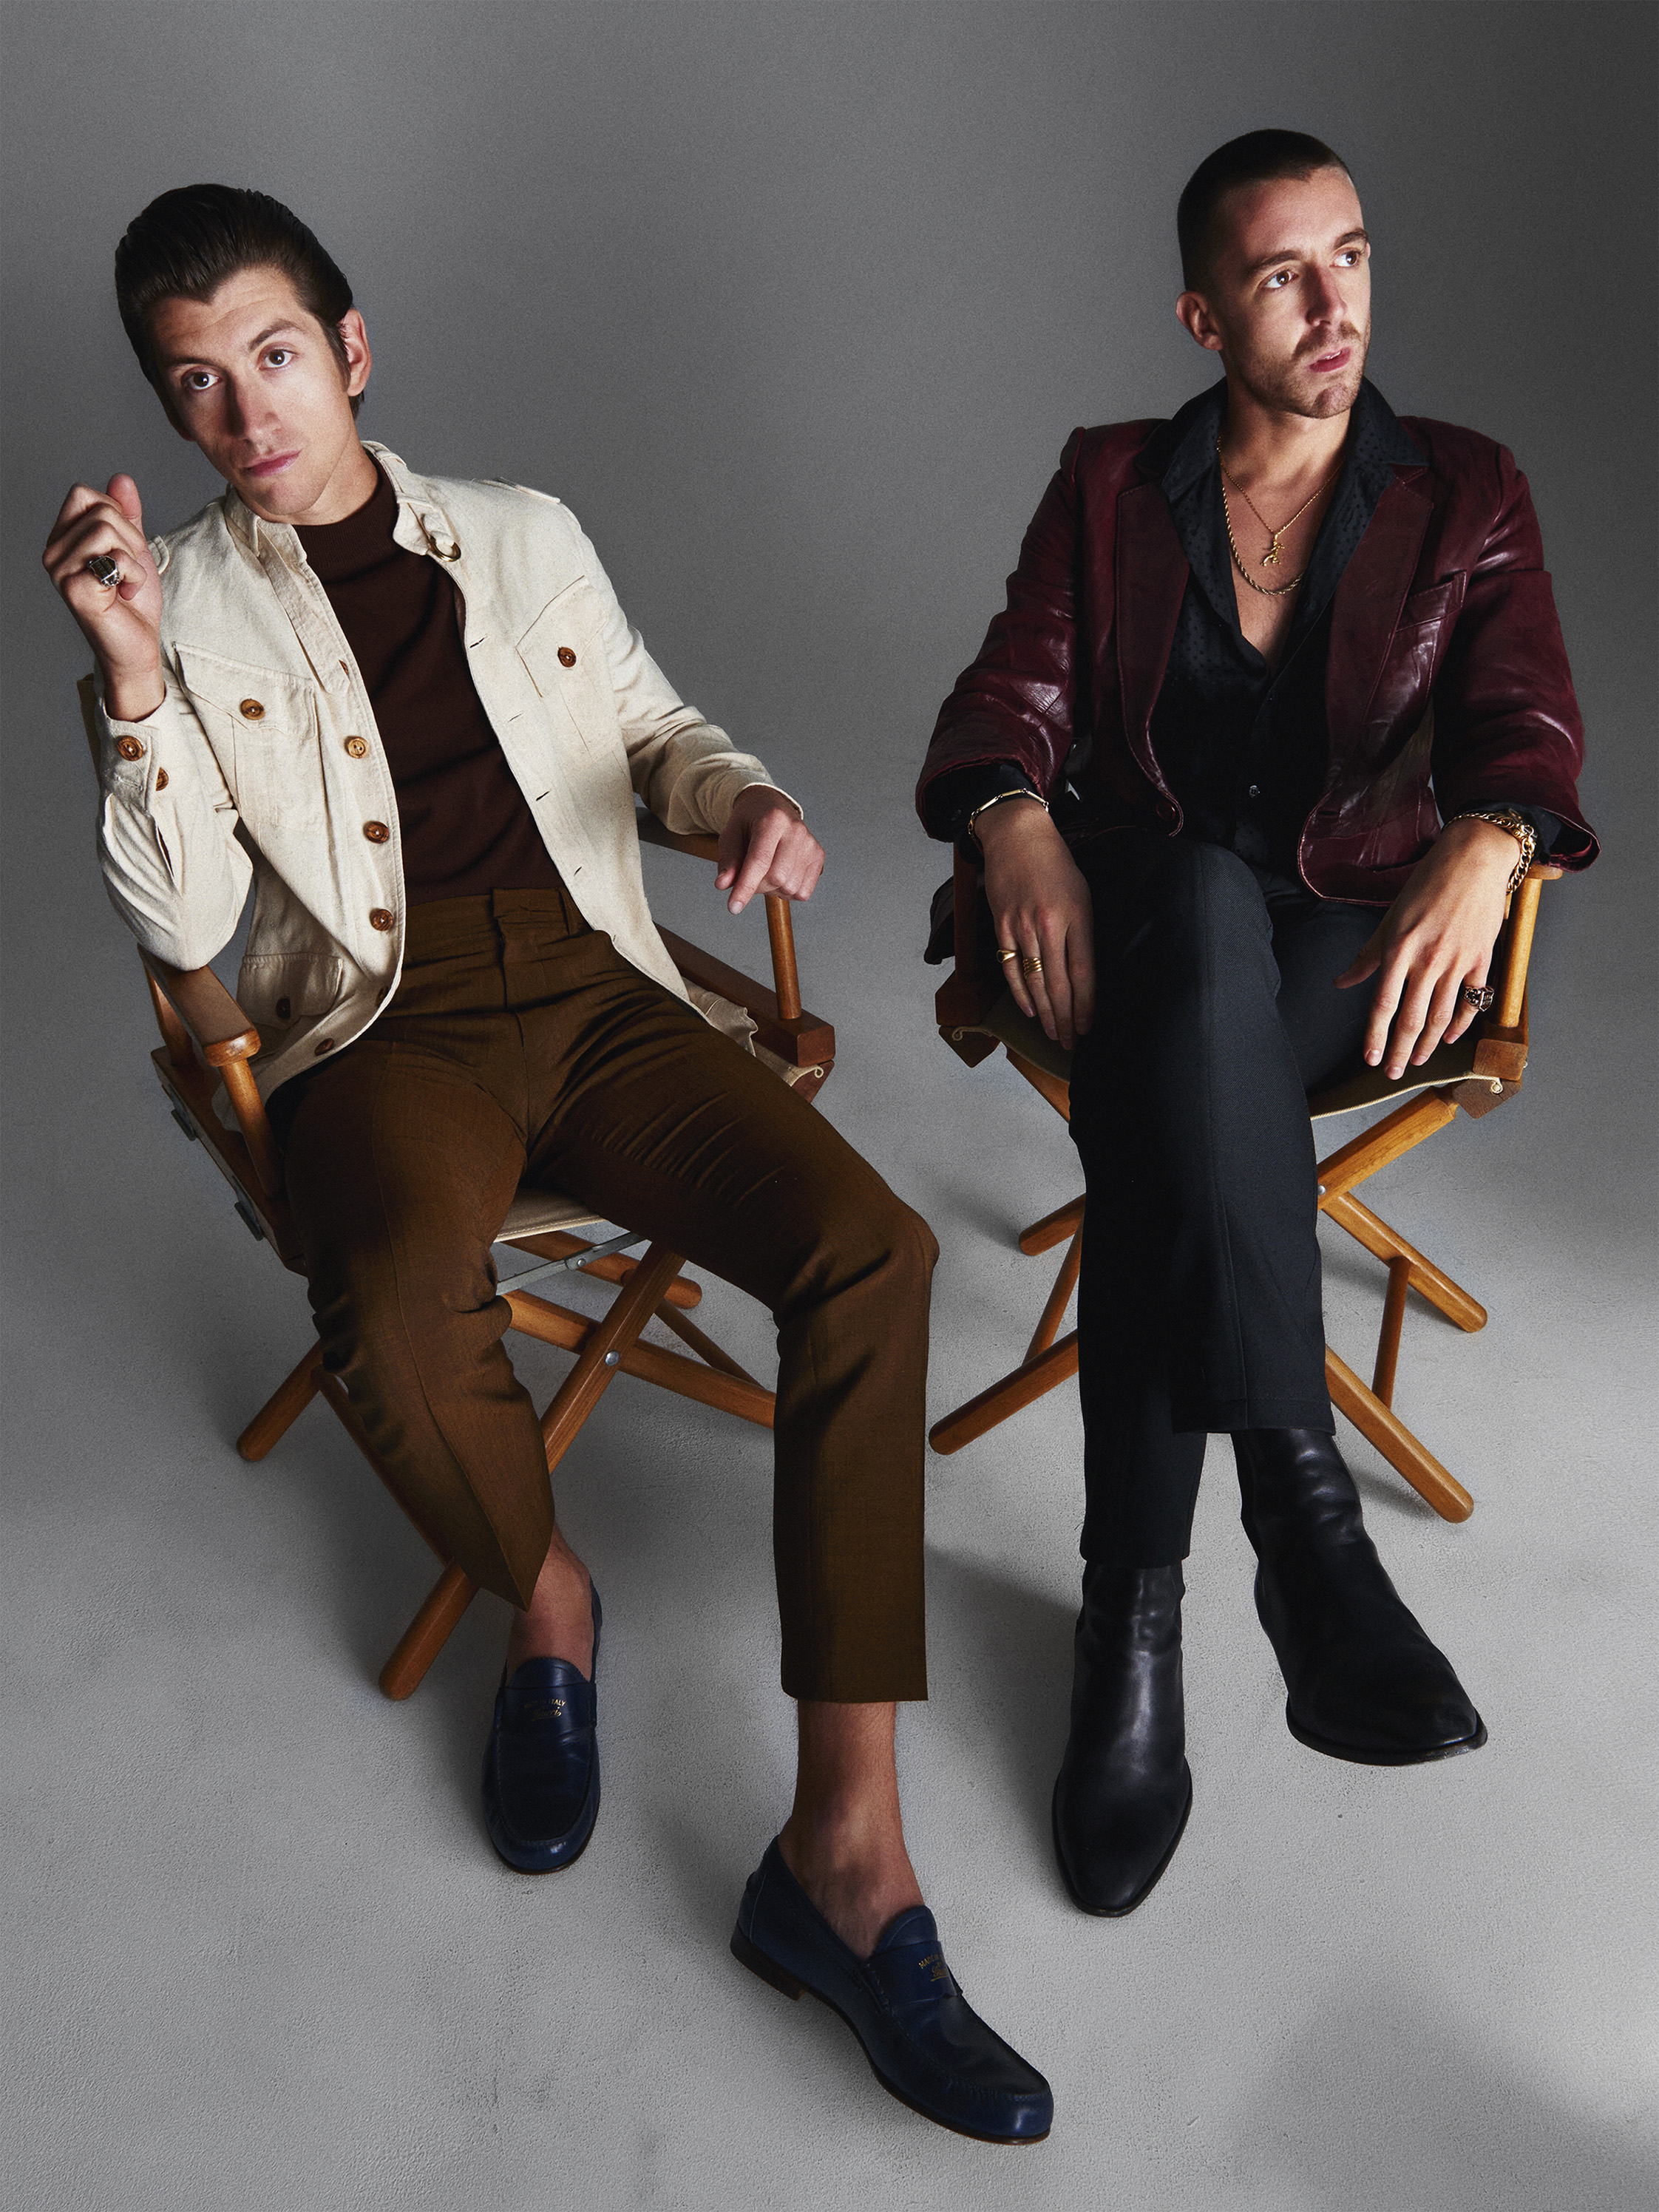 ... Releases - The Last Shadow Puppets - Everything You've Come To Expect